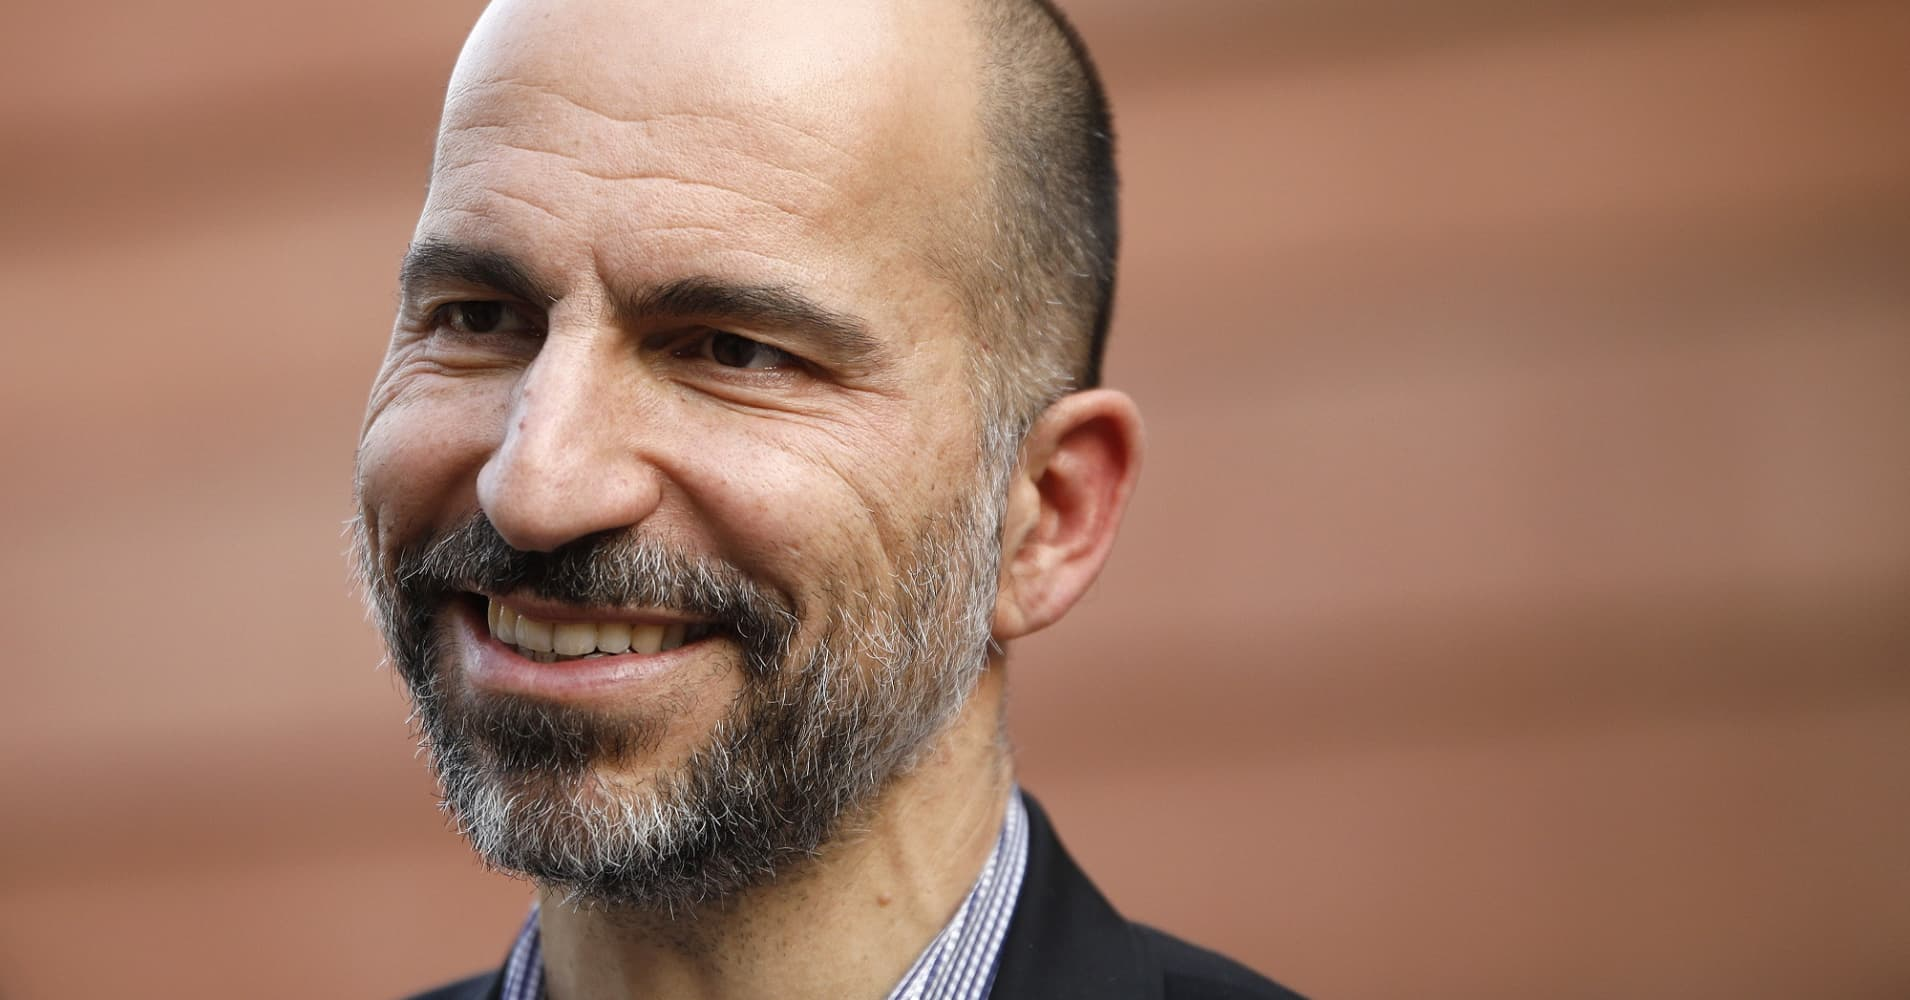 Dara Khosrowshahi, chief executive officer of Uber, looks on following a 2018 event in New Delhi, India.